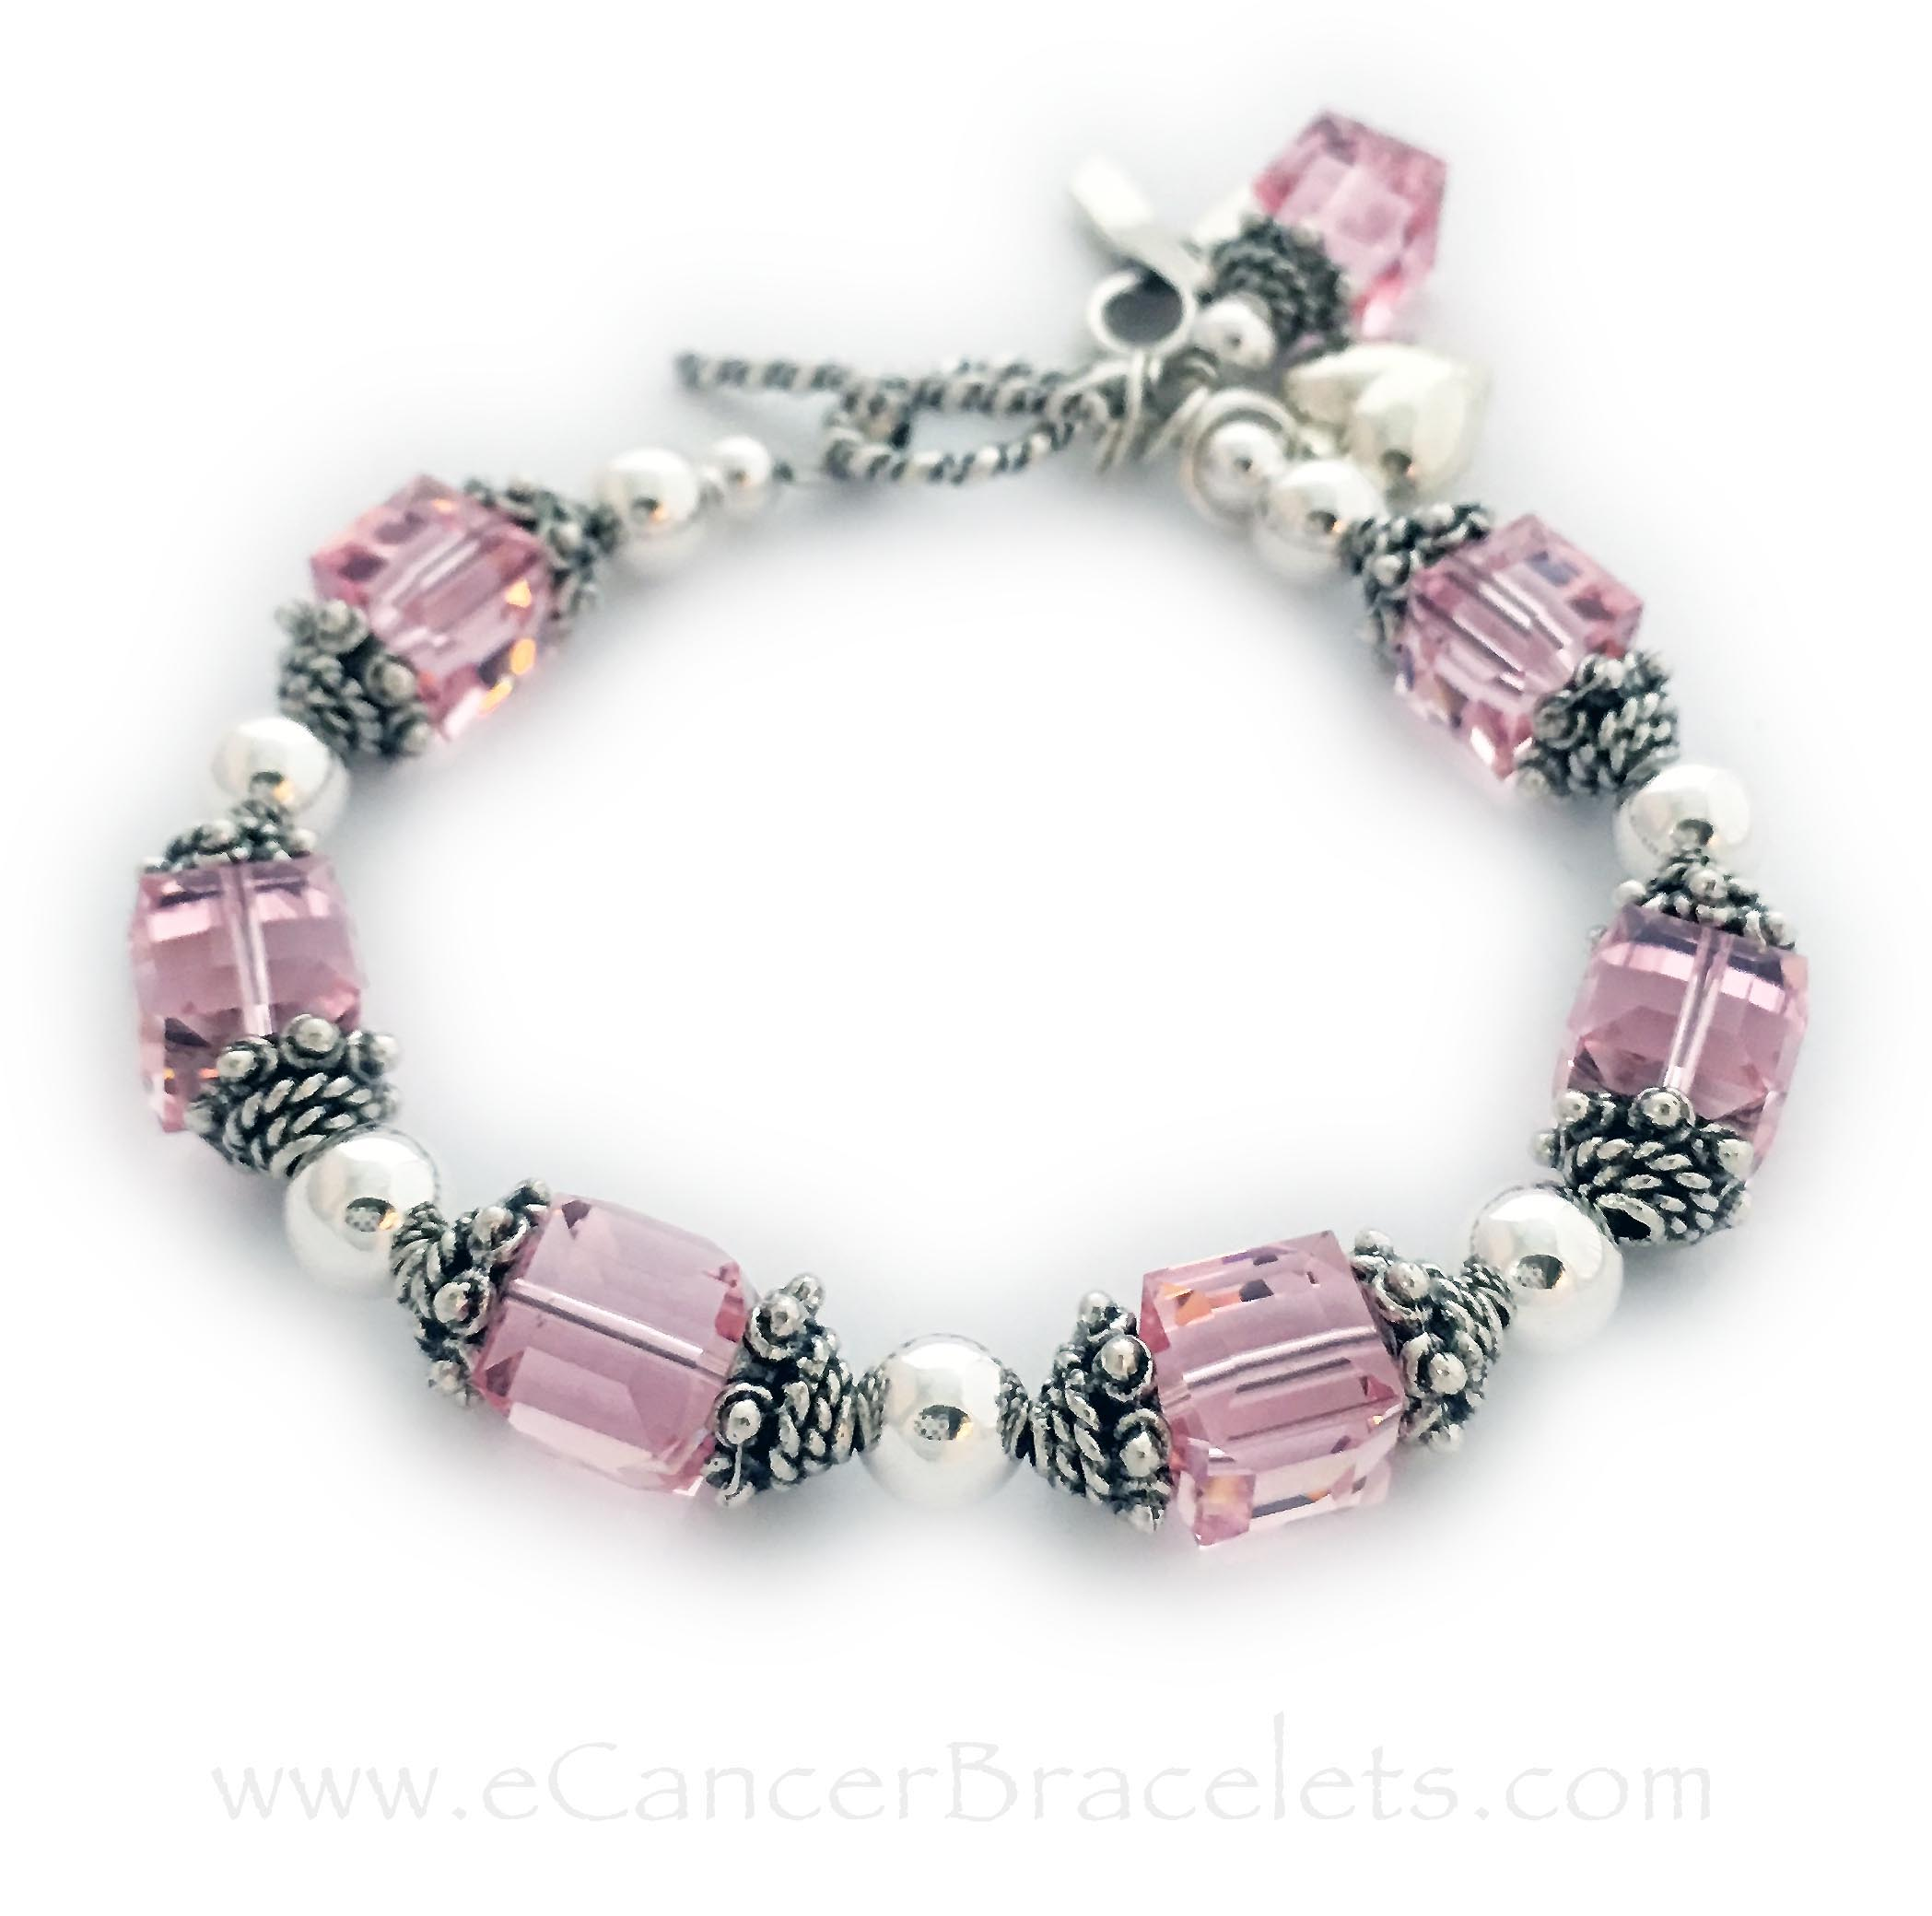 "This bracelet is shown with pink Swarovski Crystals for Breast Cancer Awareness. The corrdinating pink crystal dangle charm and ribbon charm are included in the price. This bracelet is 6 1/2"" and they added a Puffed Heart Charm."